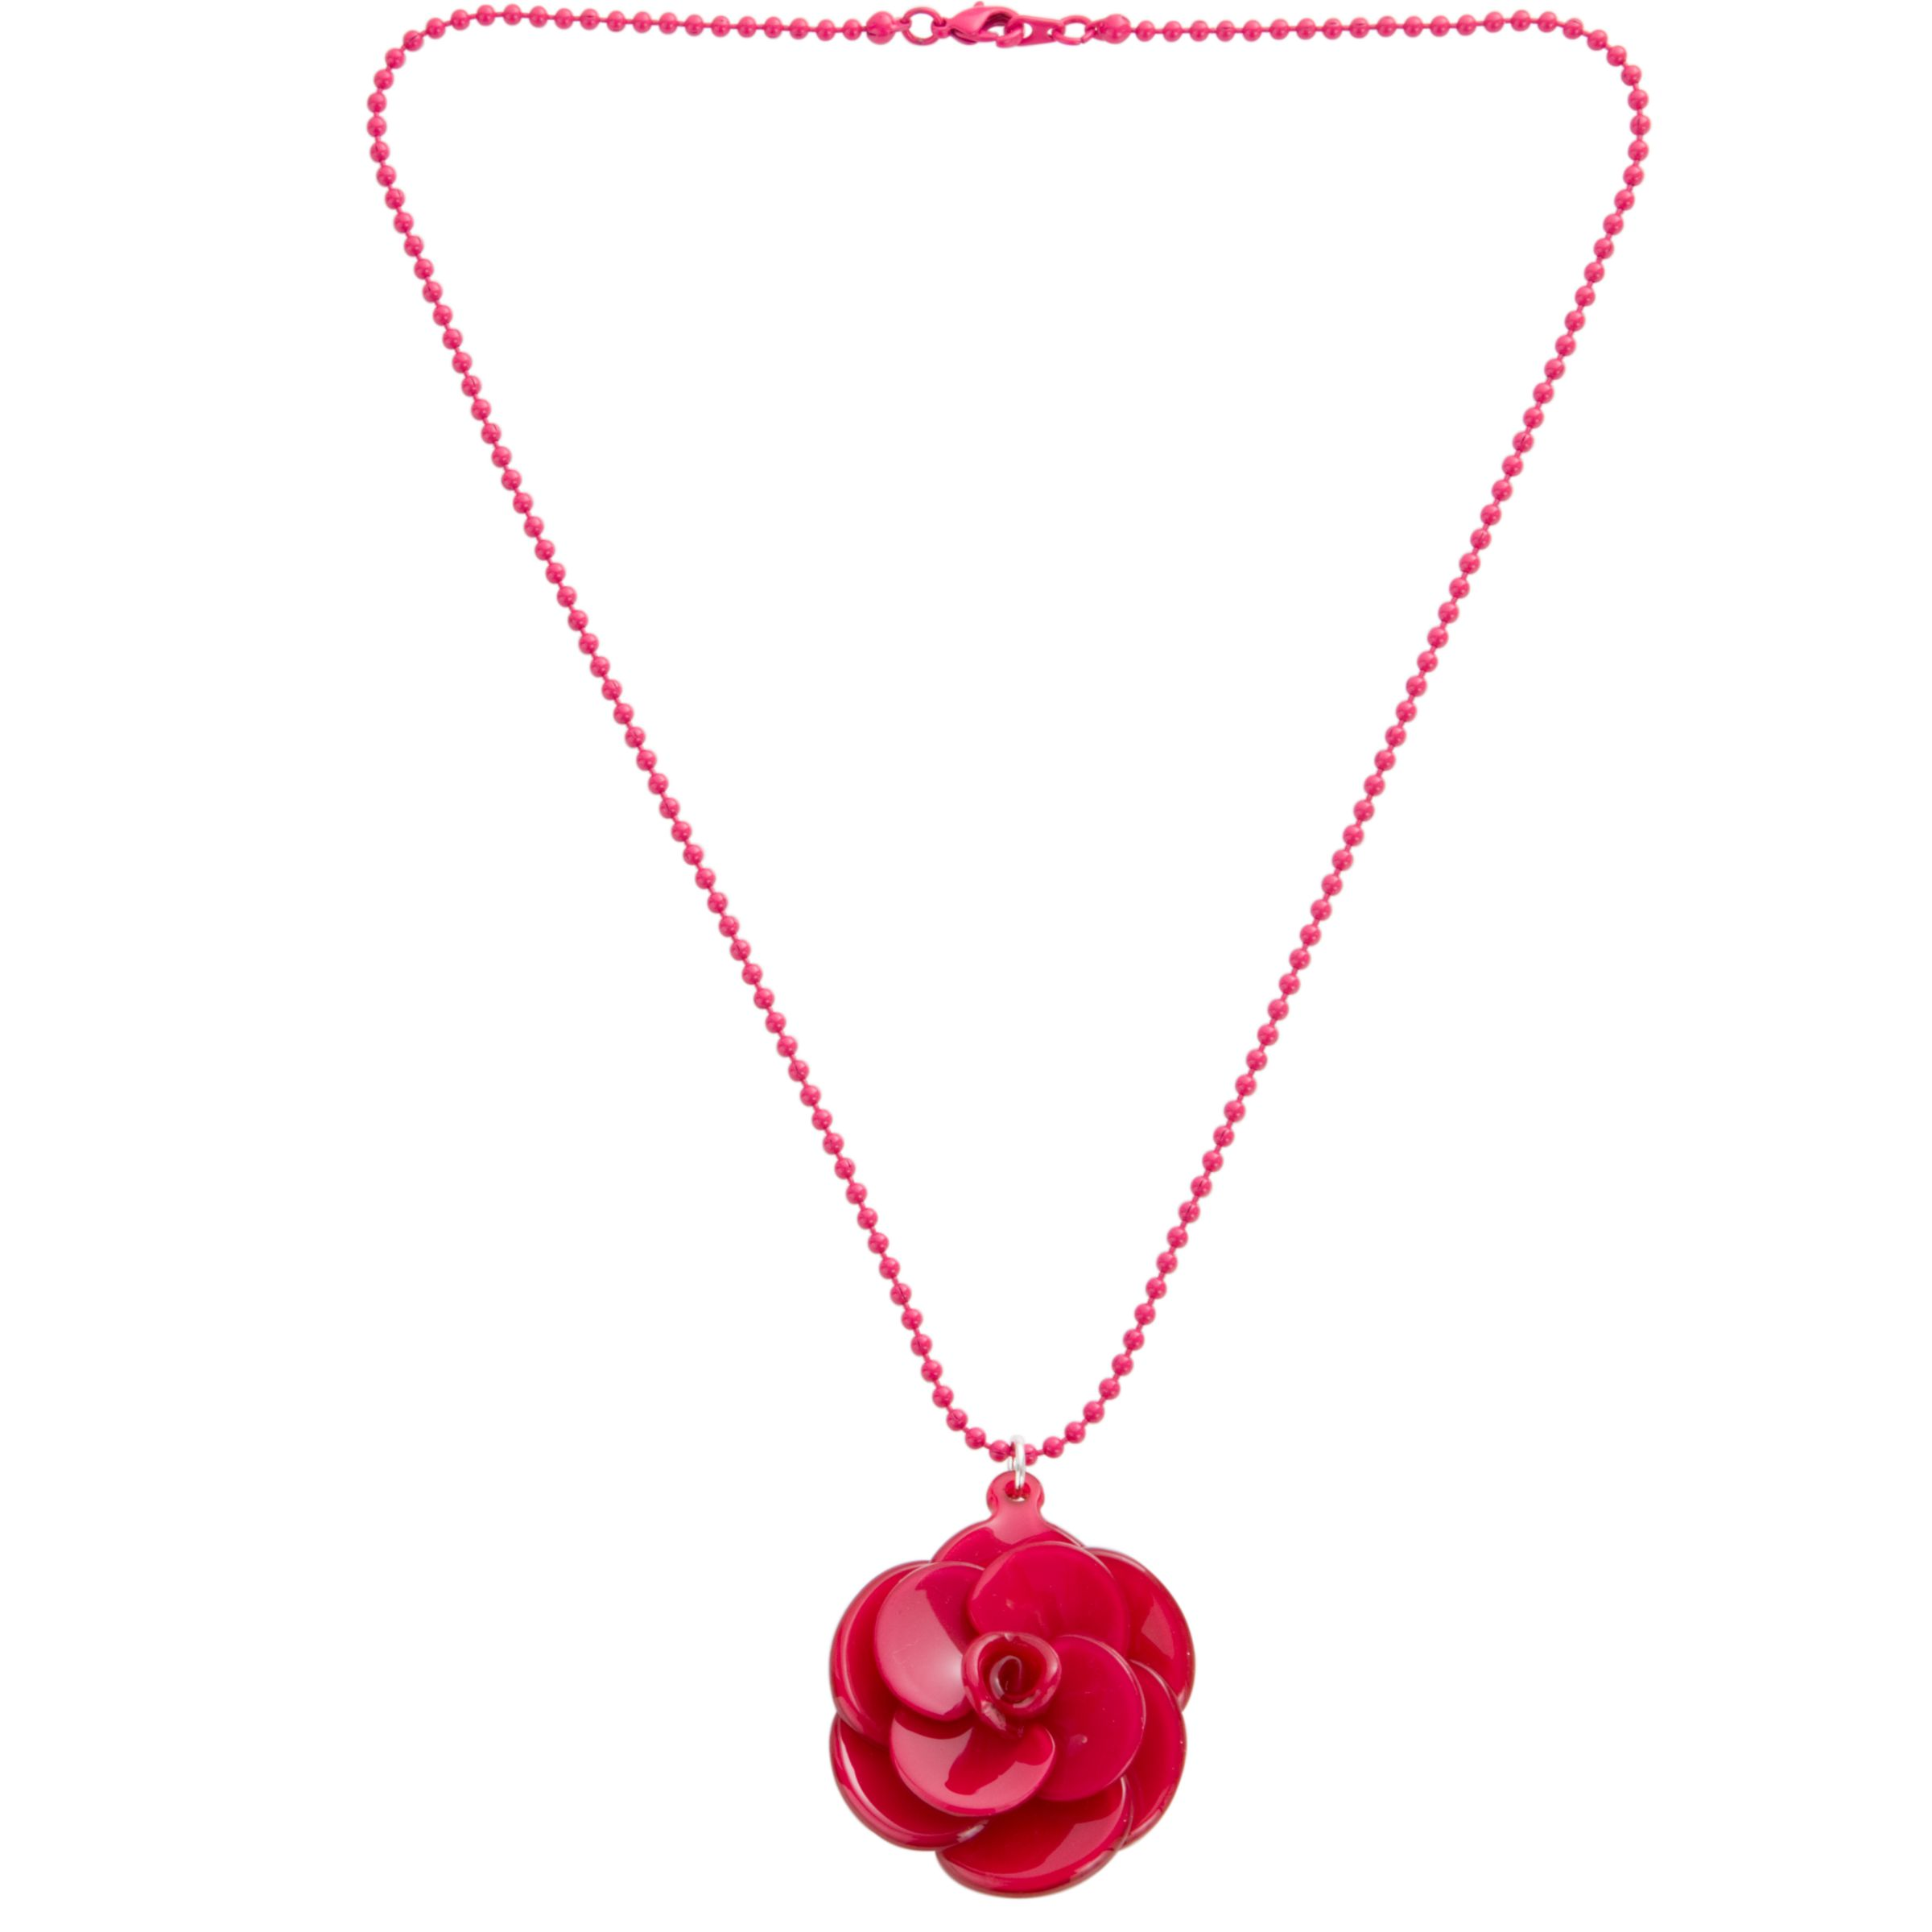 Big Baby Small Rosette Fuchsia Flower Pendant Necklace